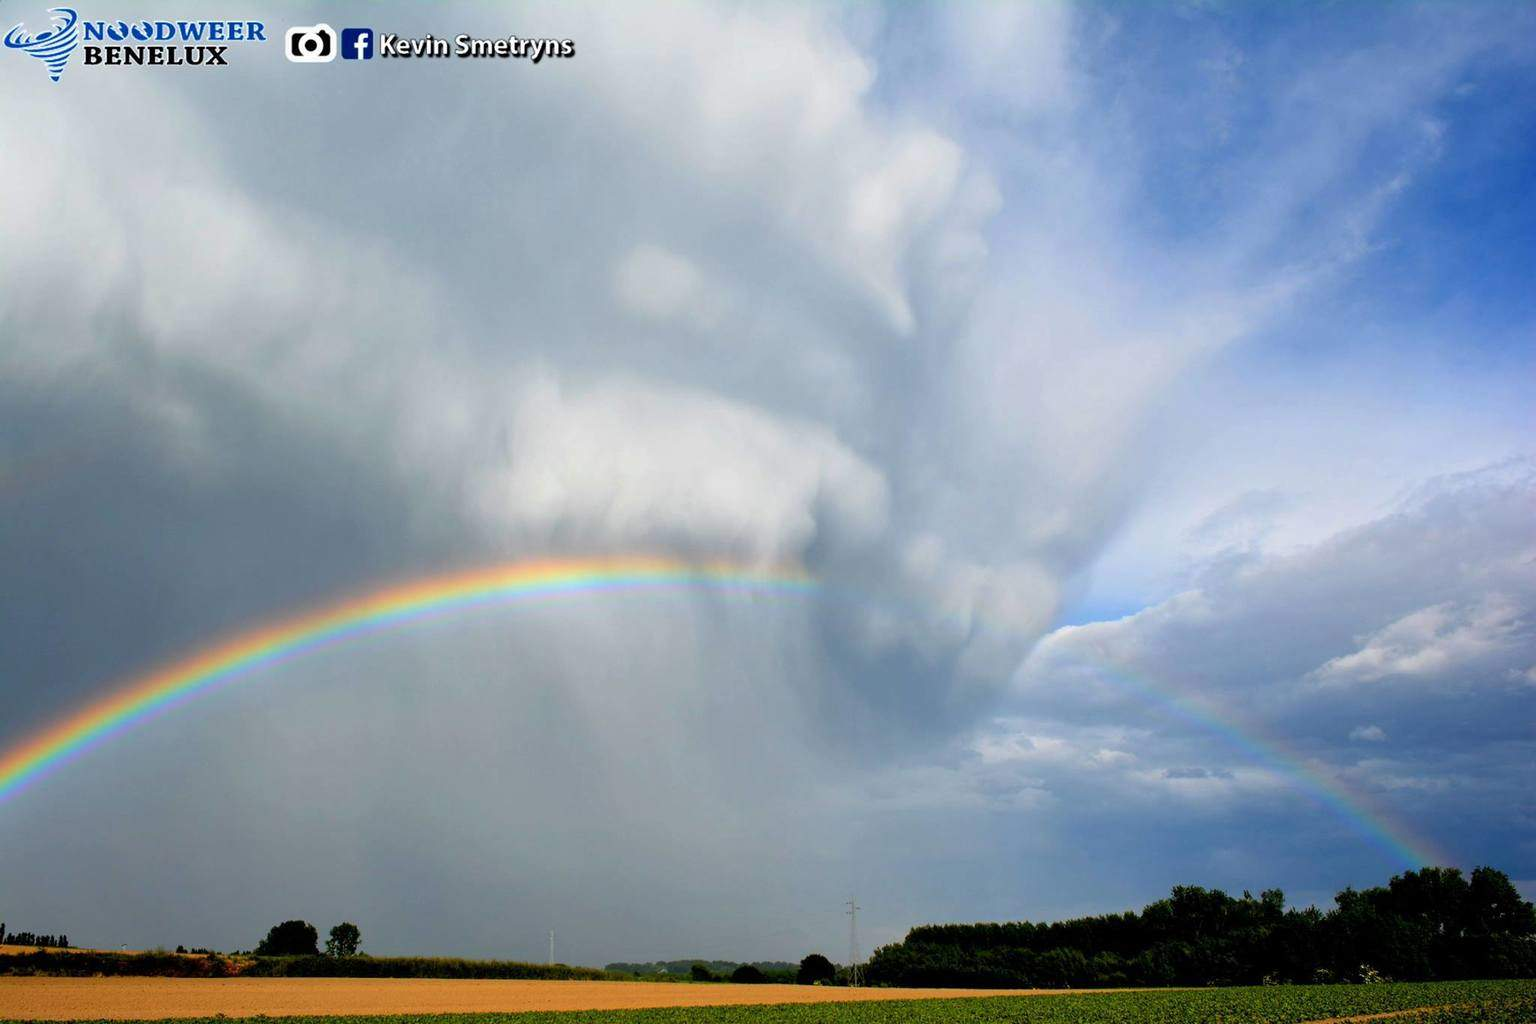 Thanks for accepting! Picture included was taken last year, may 23th 2014 in Essene, Belgium. After having quite a bust chase, me ( Kevin Smetryns Photography & Stormchasing ) and my friend from Severe Weather in Belgium decided to return home when a rainbow took shape... ) So we searched for a fine viewing spot aaaand, not such a bust after all!